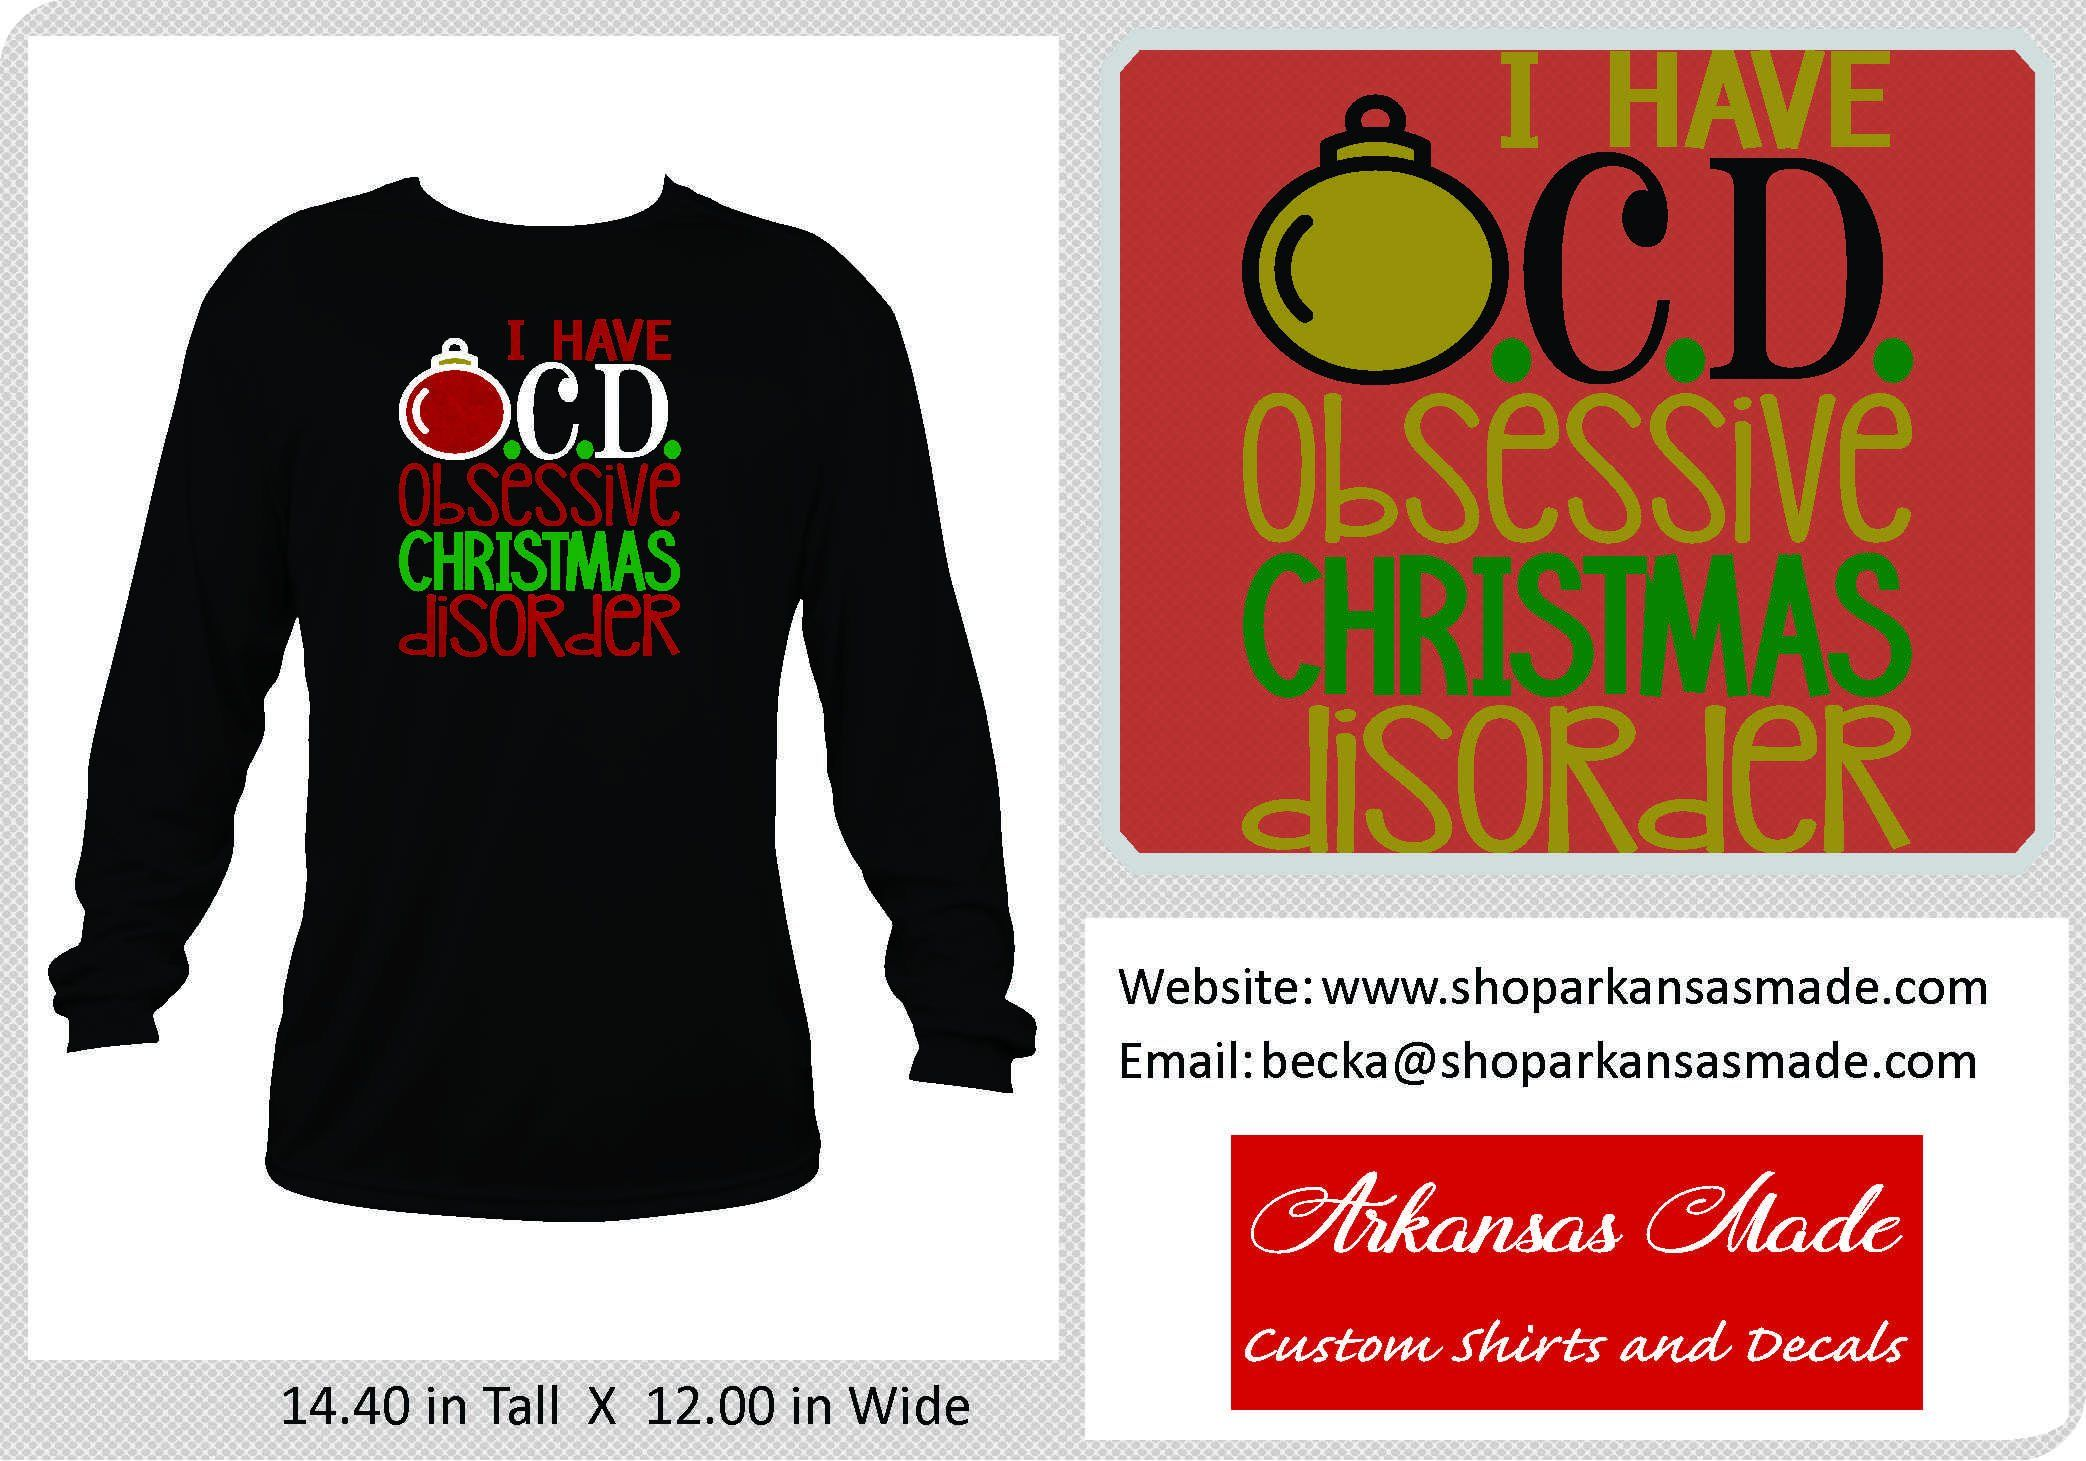 I Have OCD, Obsessive Christmas Disorder long sleeve shirt ...